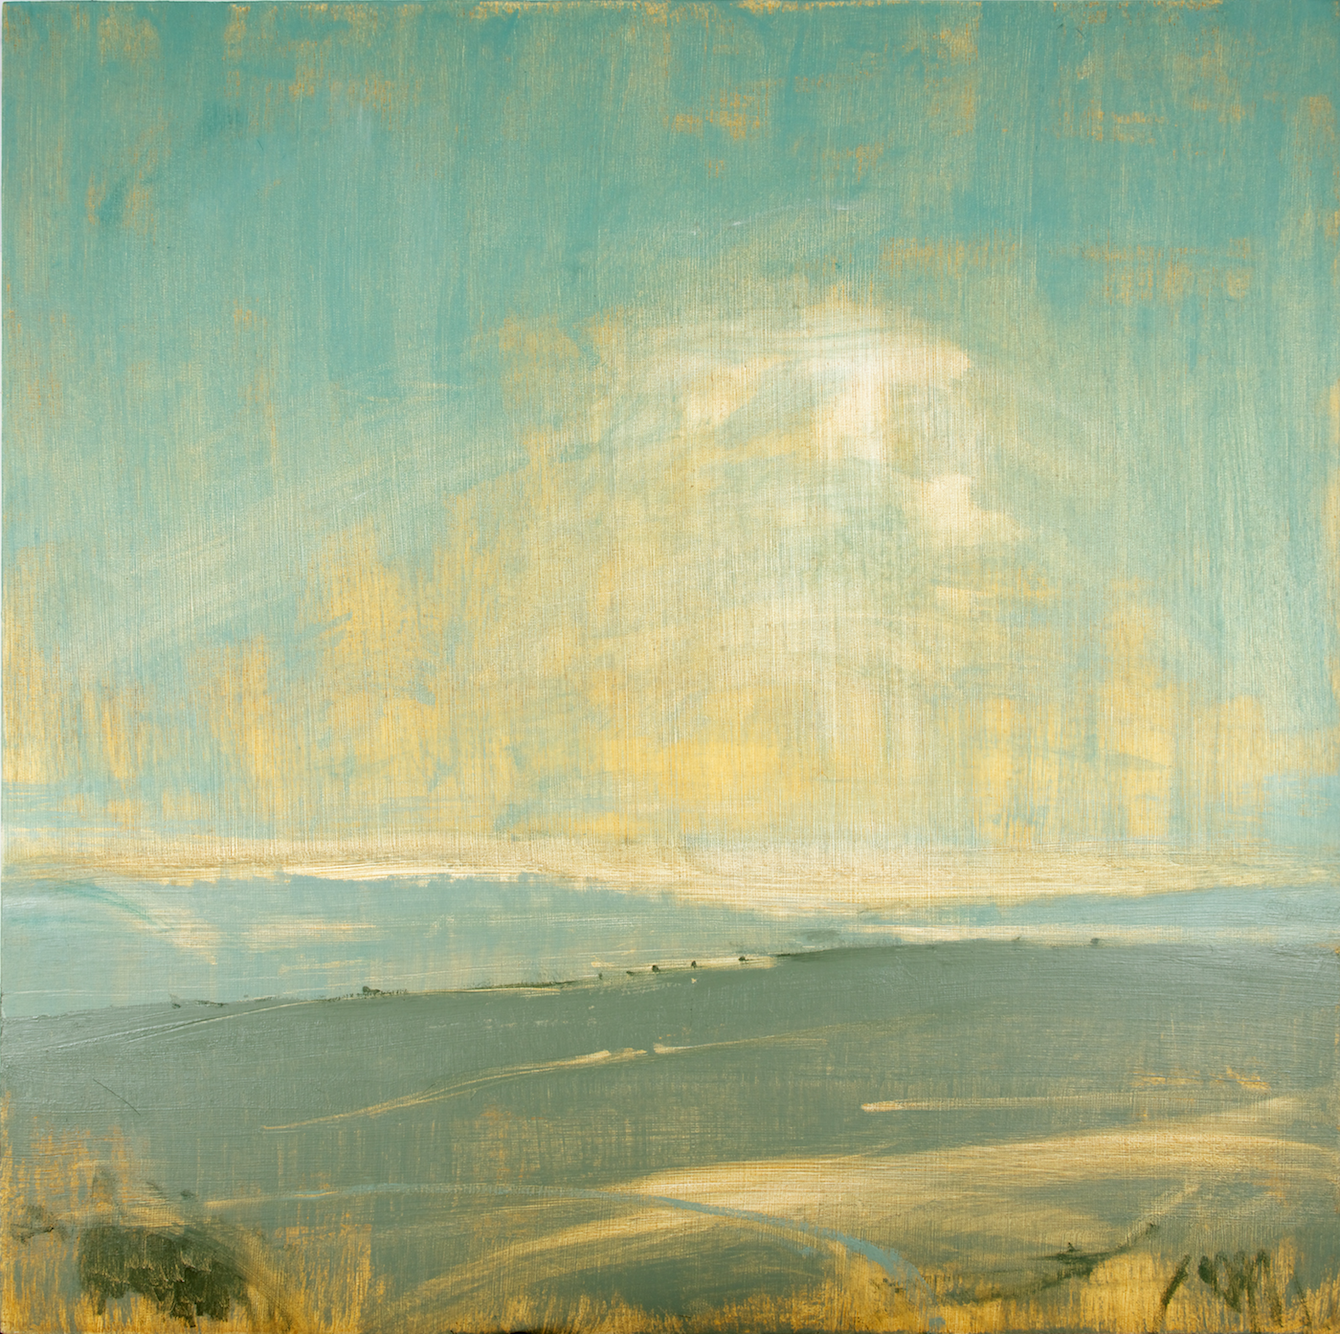 Title: Sussex Downs Sunset Turquoise II Size: 100 x 100 cm Medium: Oil on canvas